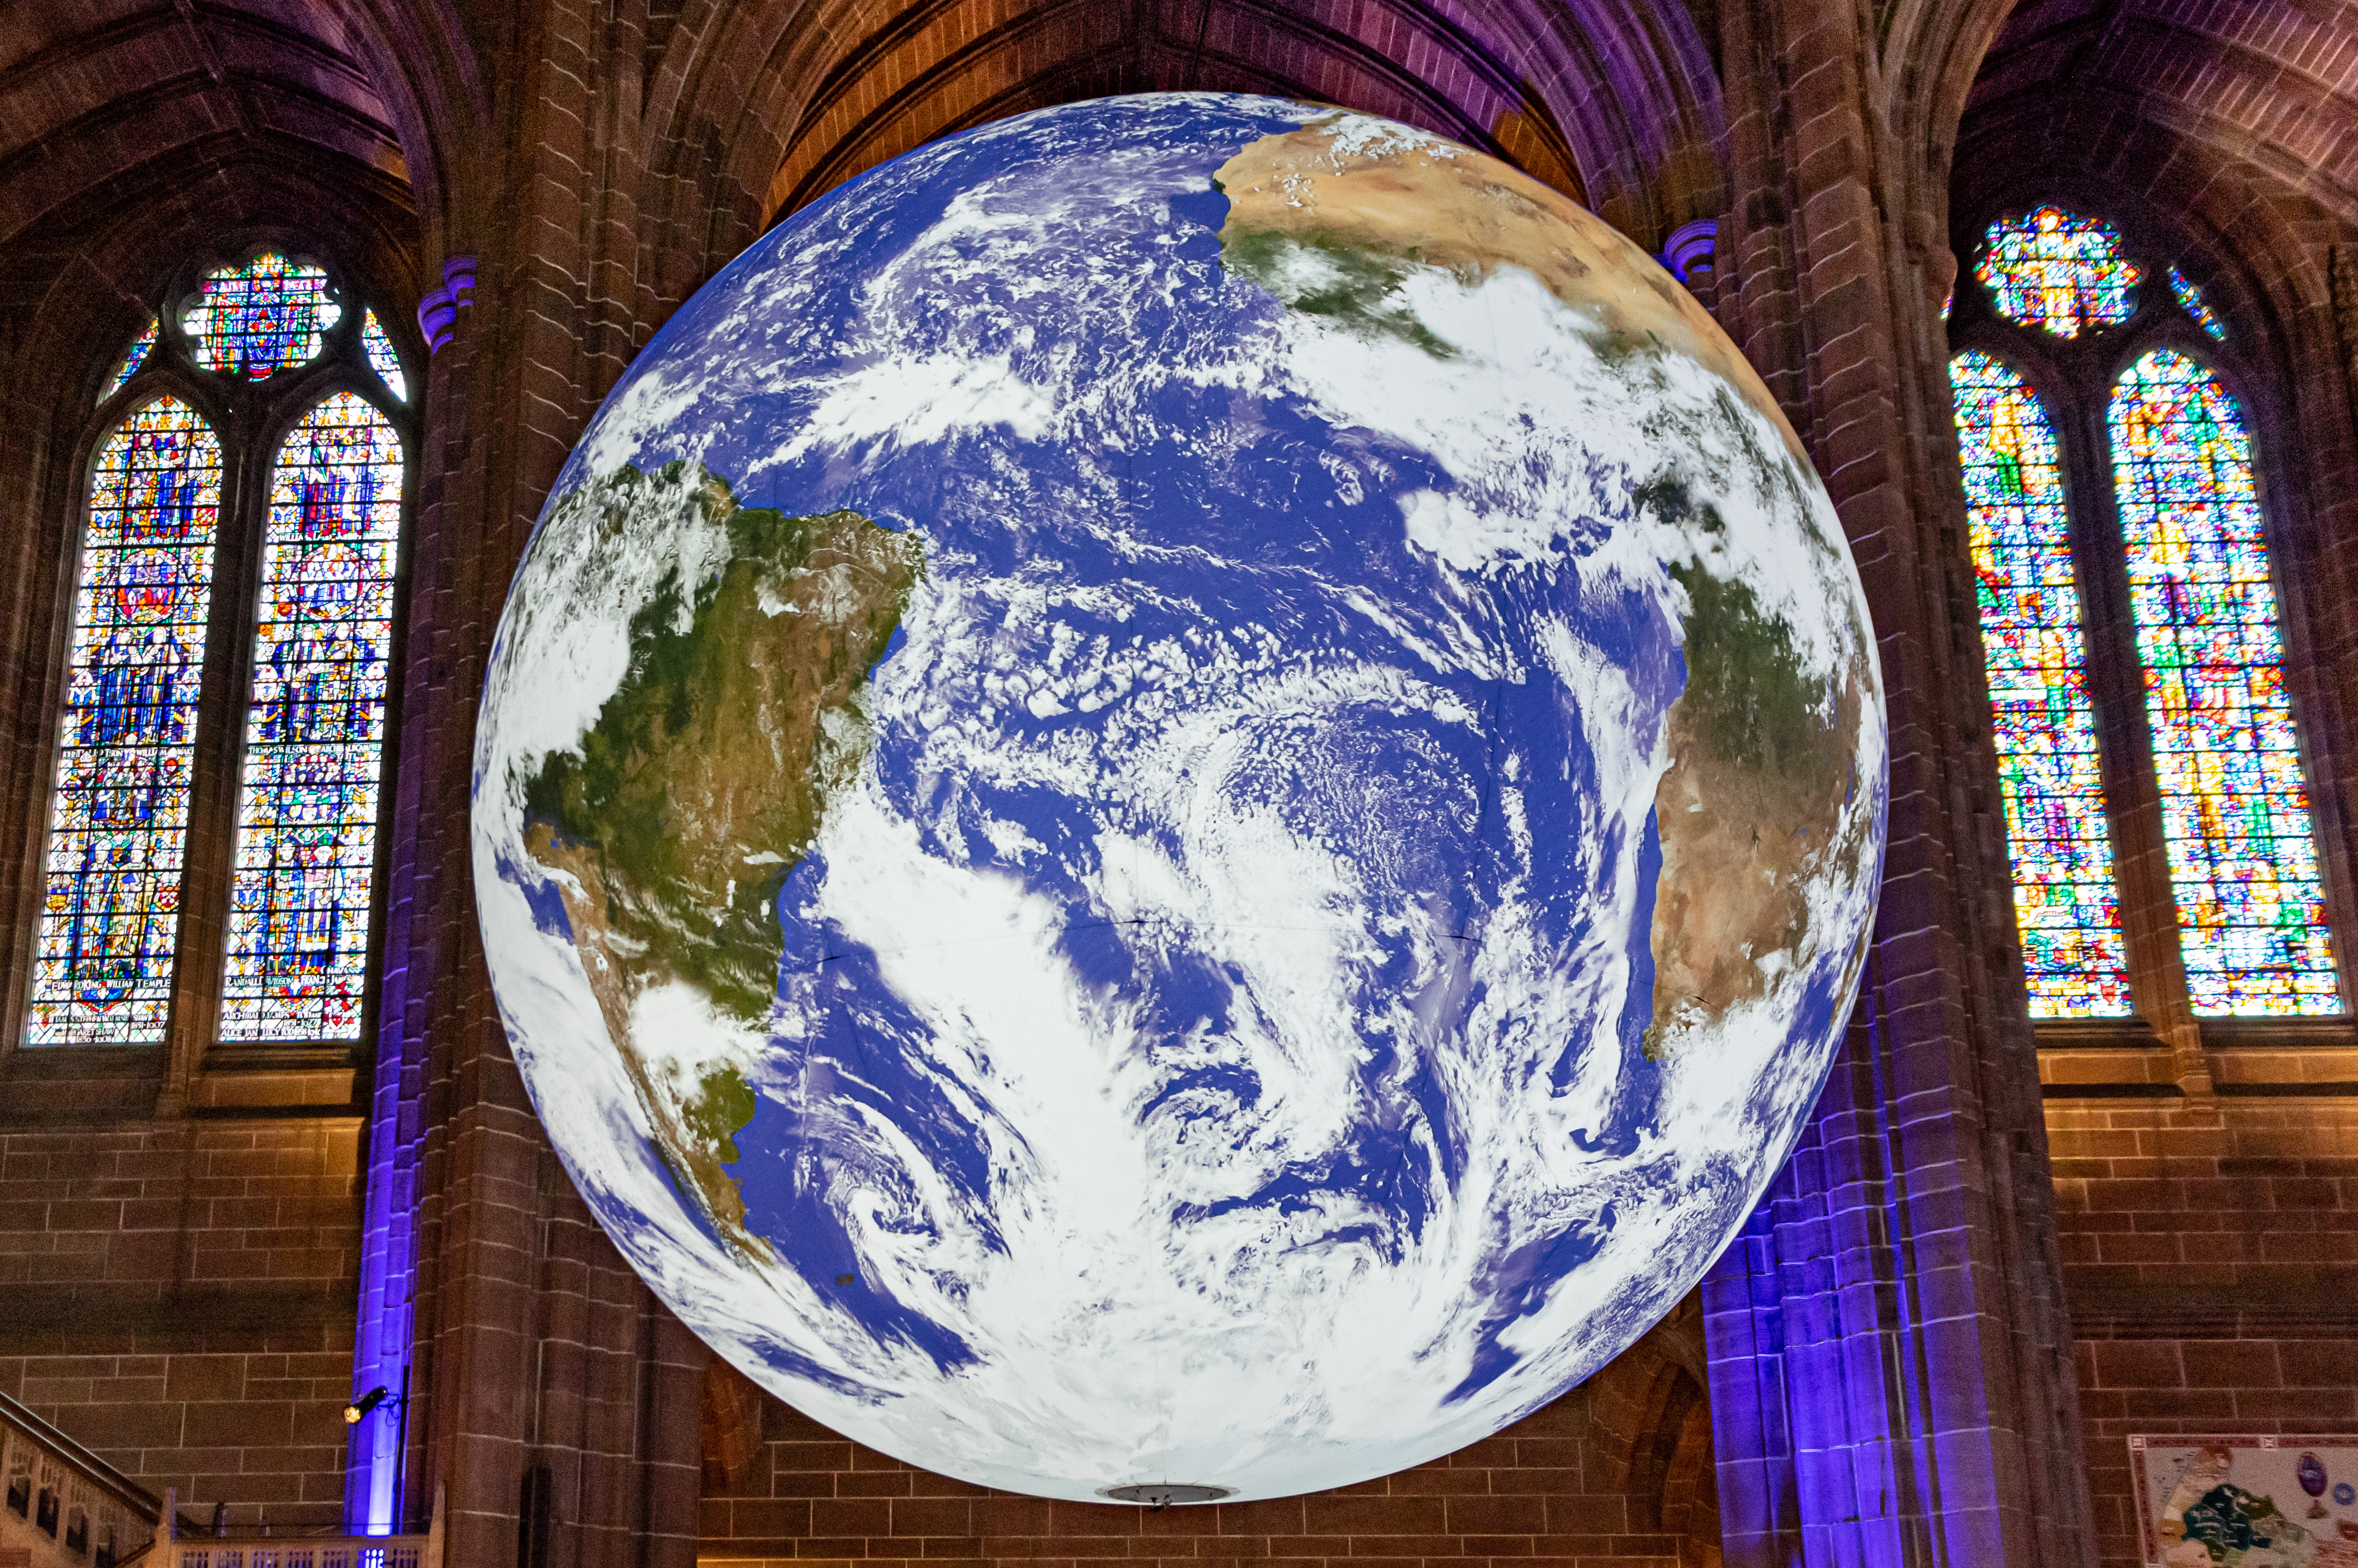 Artist Luke Jerram's Gaia installation at Liverpool's Anglican Cathedral slowly rotates accompanied by music and a commentary by Sir Richard Attenborough.